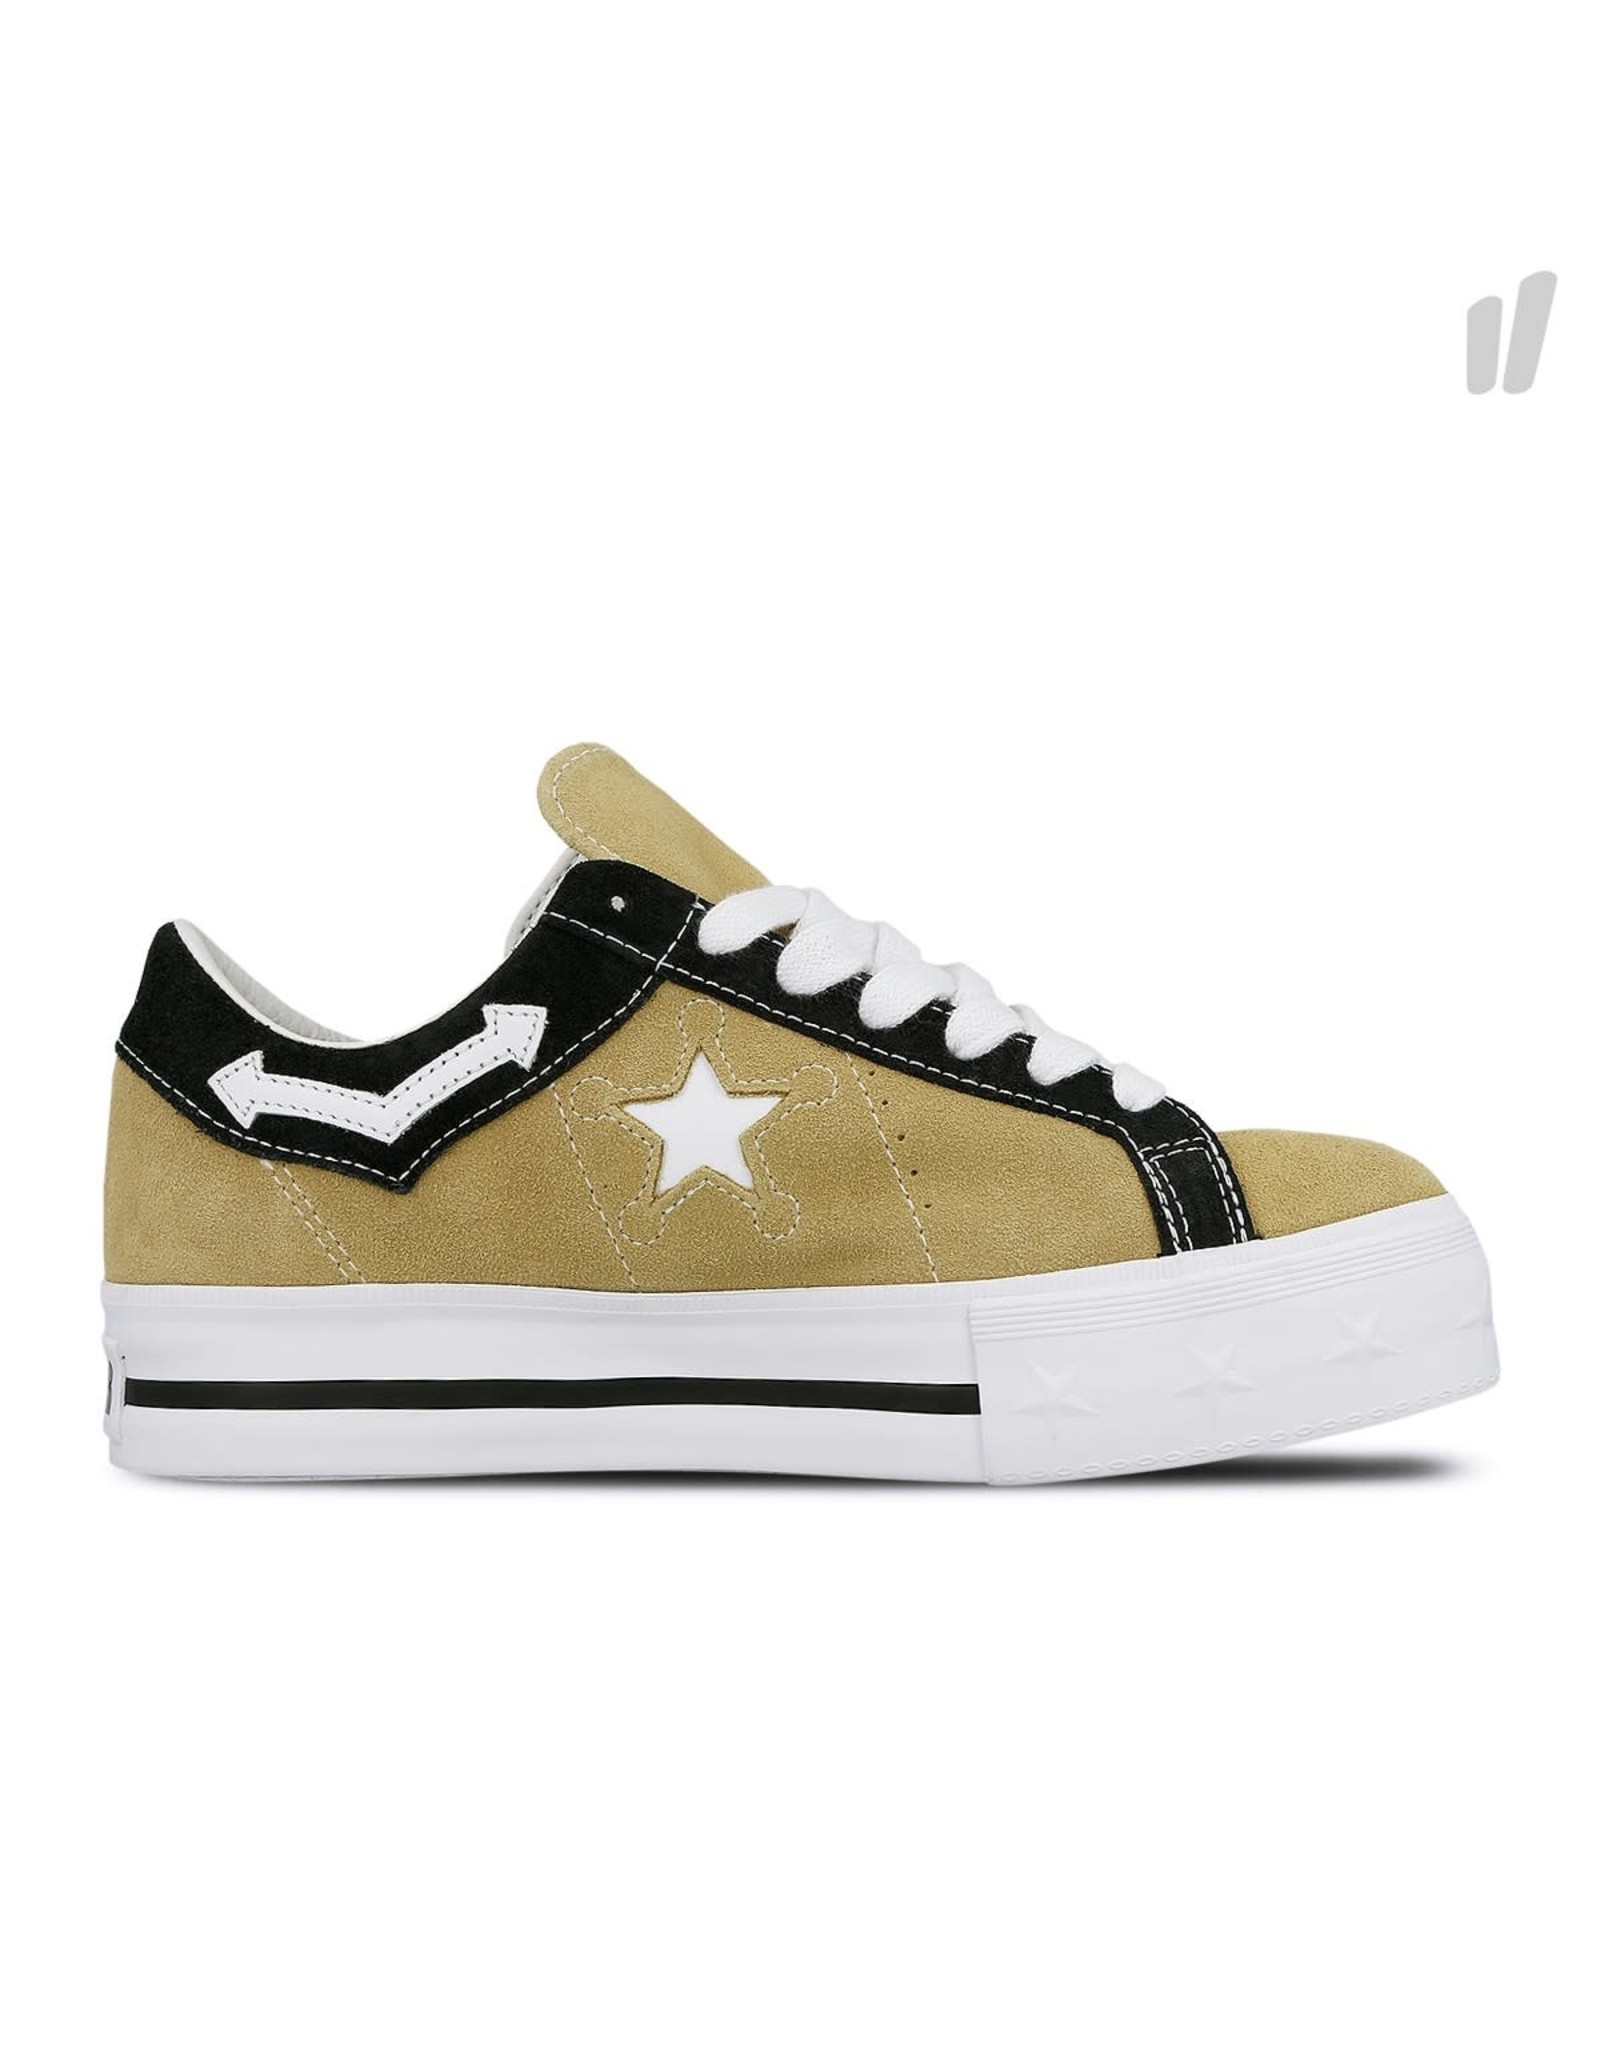 CONVERSE ONE STAR PLATFORM OX SUEDE WOOD ASH/WHITE C987PW-563731C